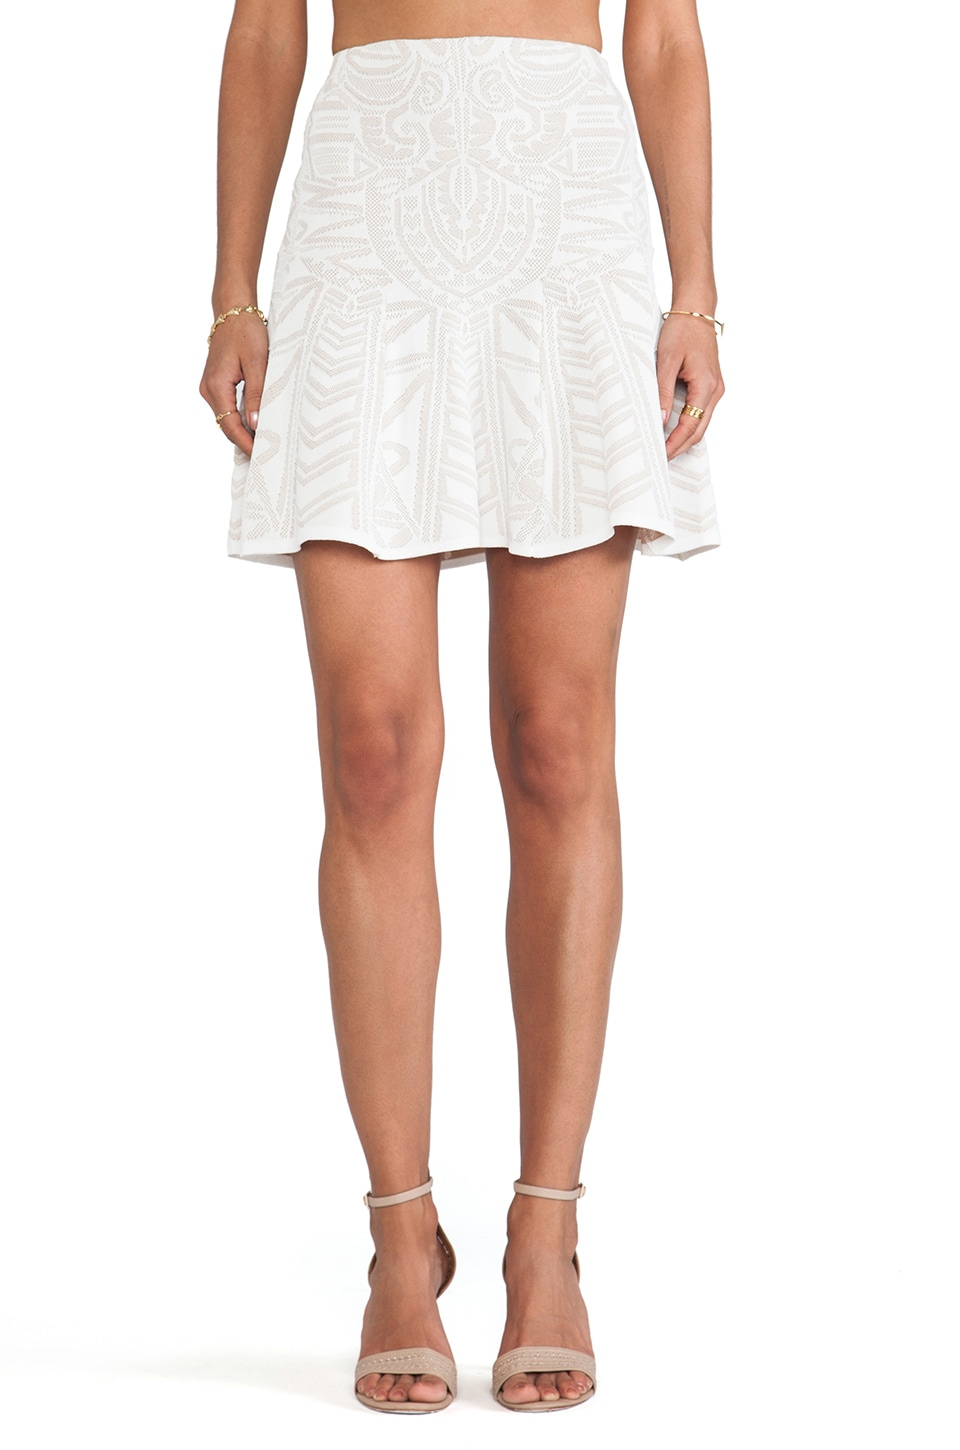 RVN Mayan Lace Jacq Skirt in White & Nude